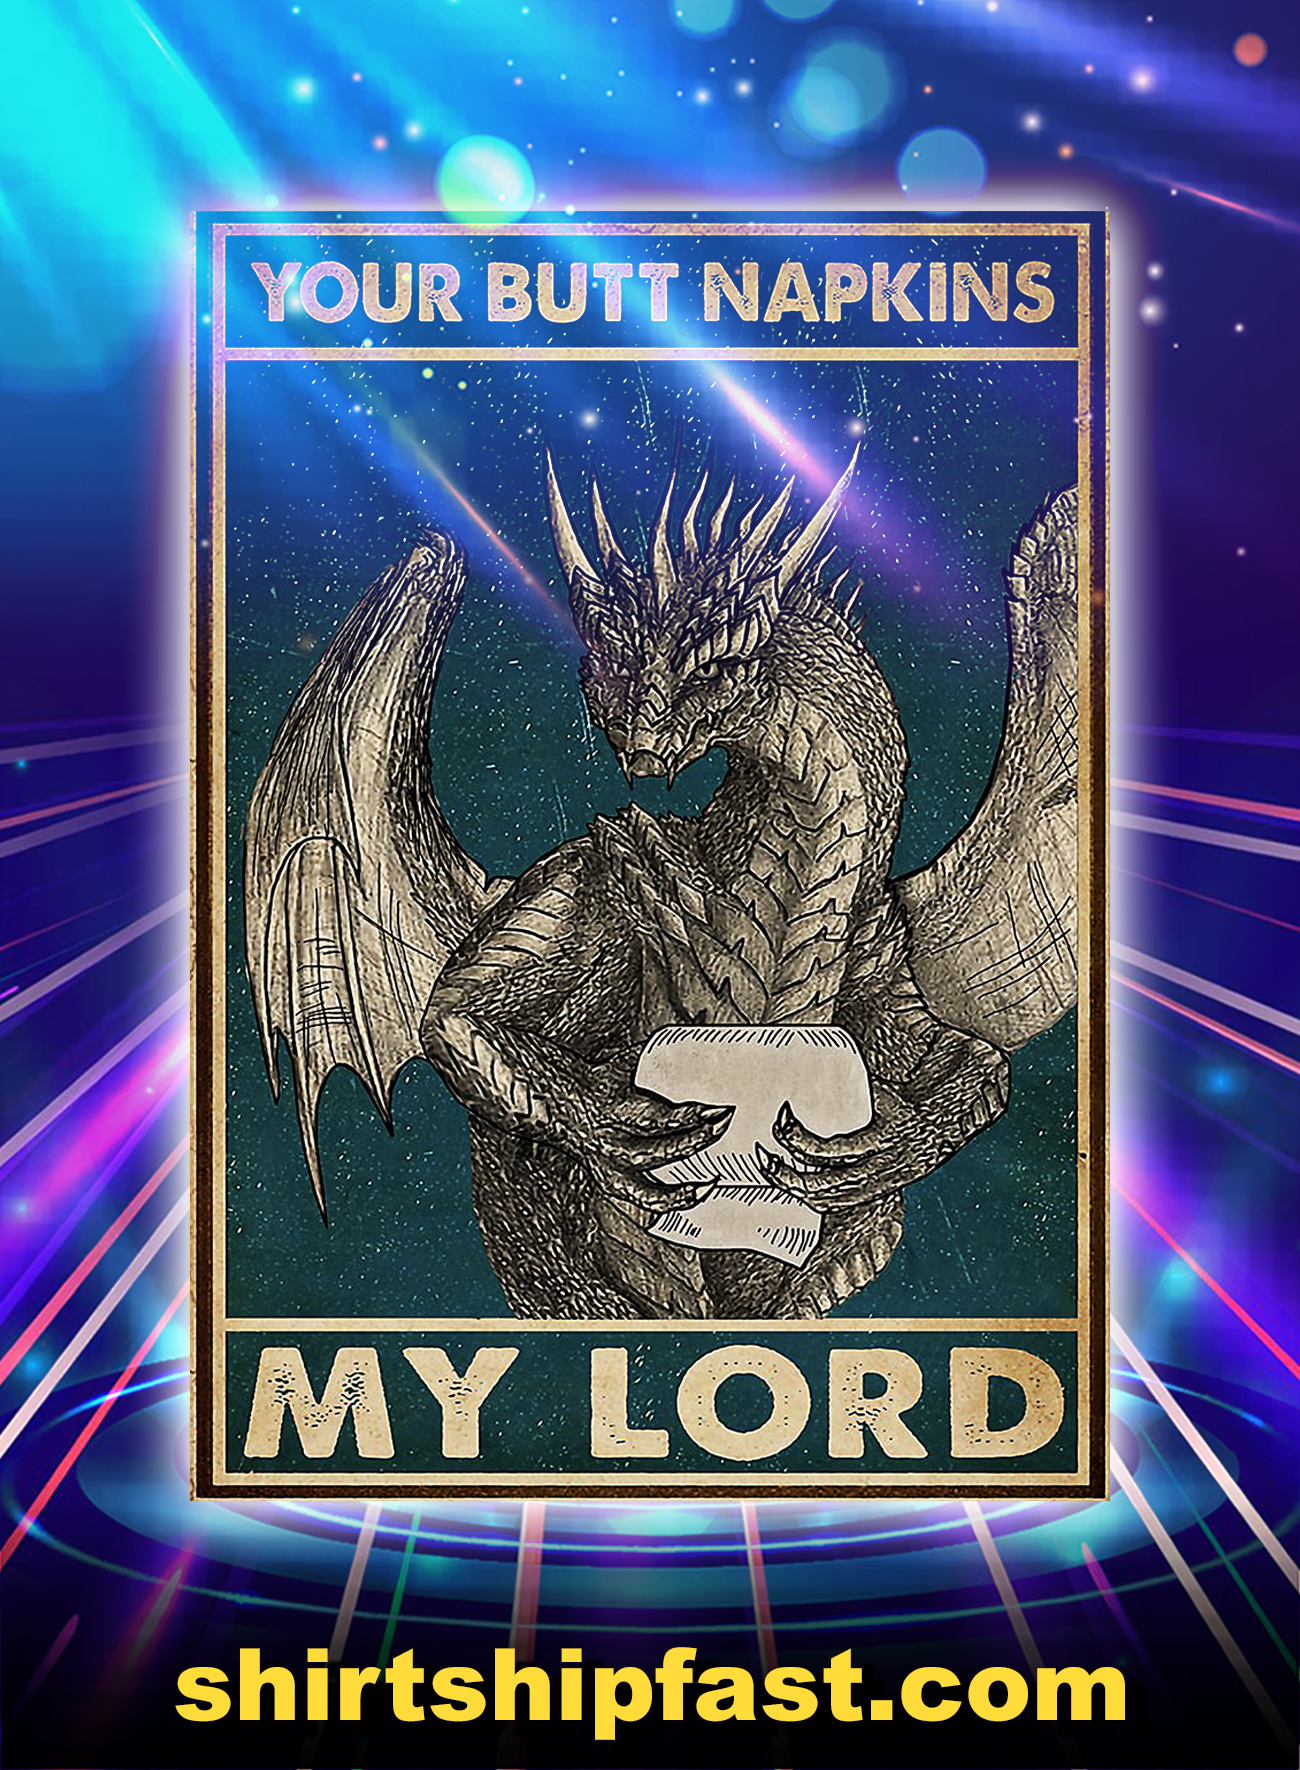 Dragon toilet paper your butt napkins my lord poster - A4